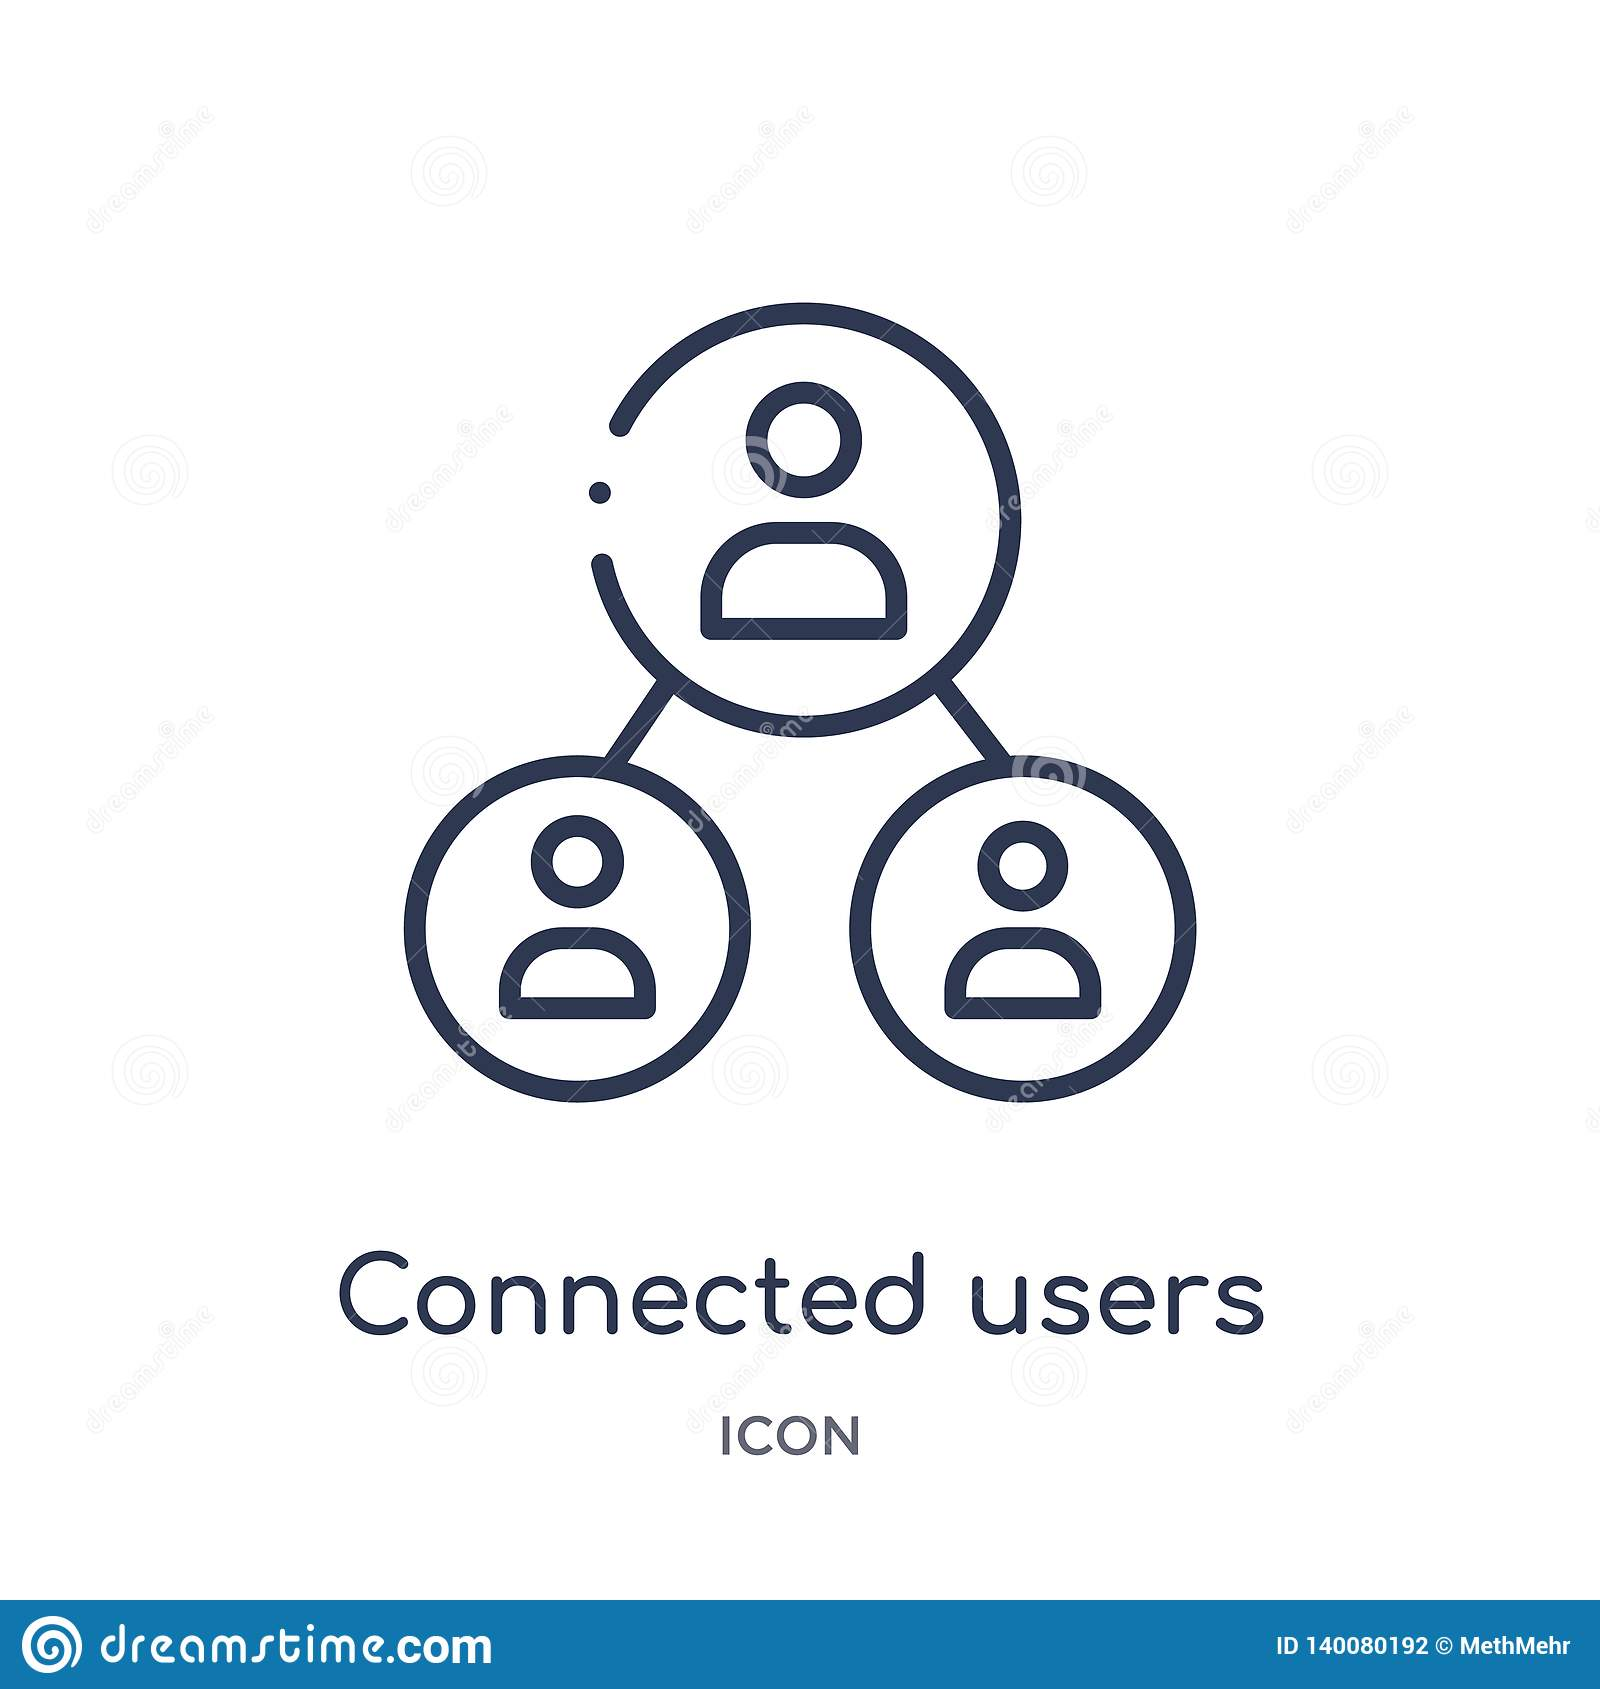 connected users in flow chart icon from user interface outline collection. Thin line connected users in flow chart icon isolated